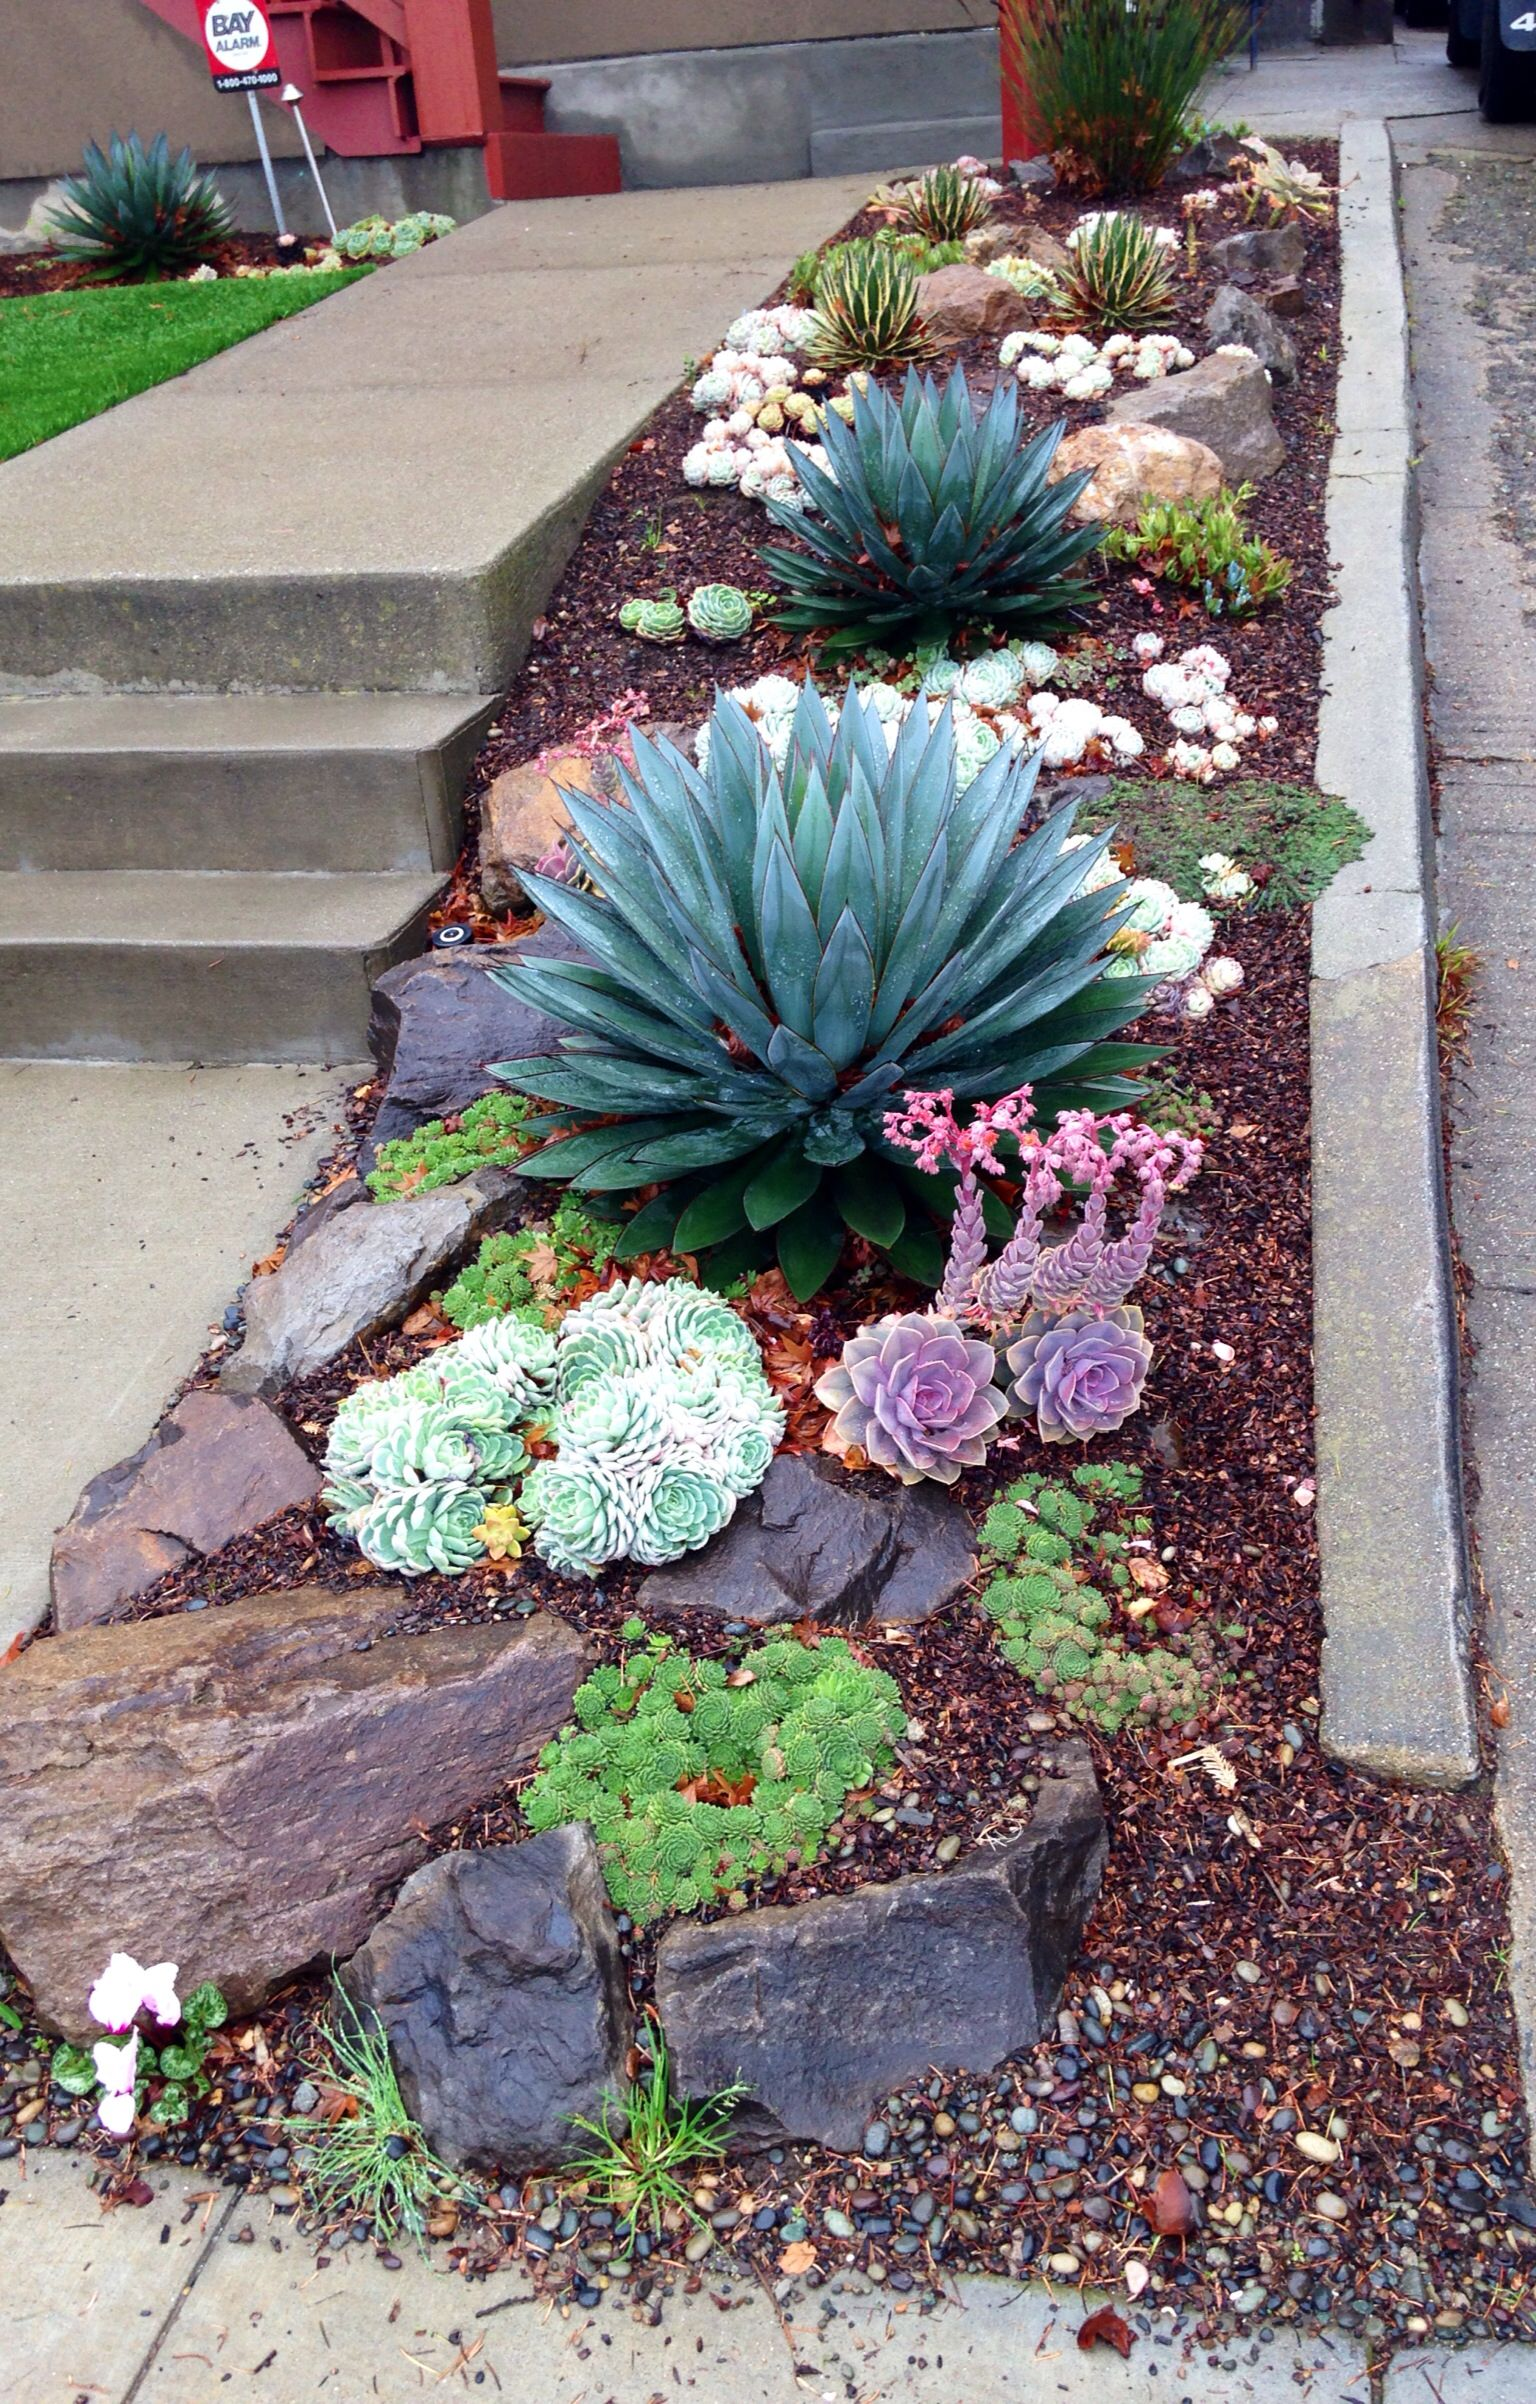 Oakland Glenview Love The Spacing Of The Plants Nothing Is Crowding Each Other Enjoy The C Front Yard Garden Design Succulent Landscaping Succulents Garden